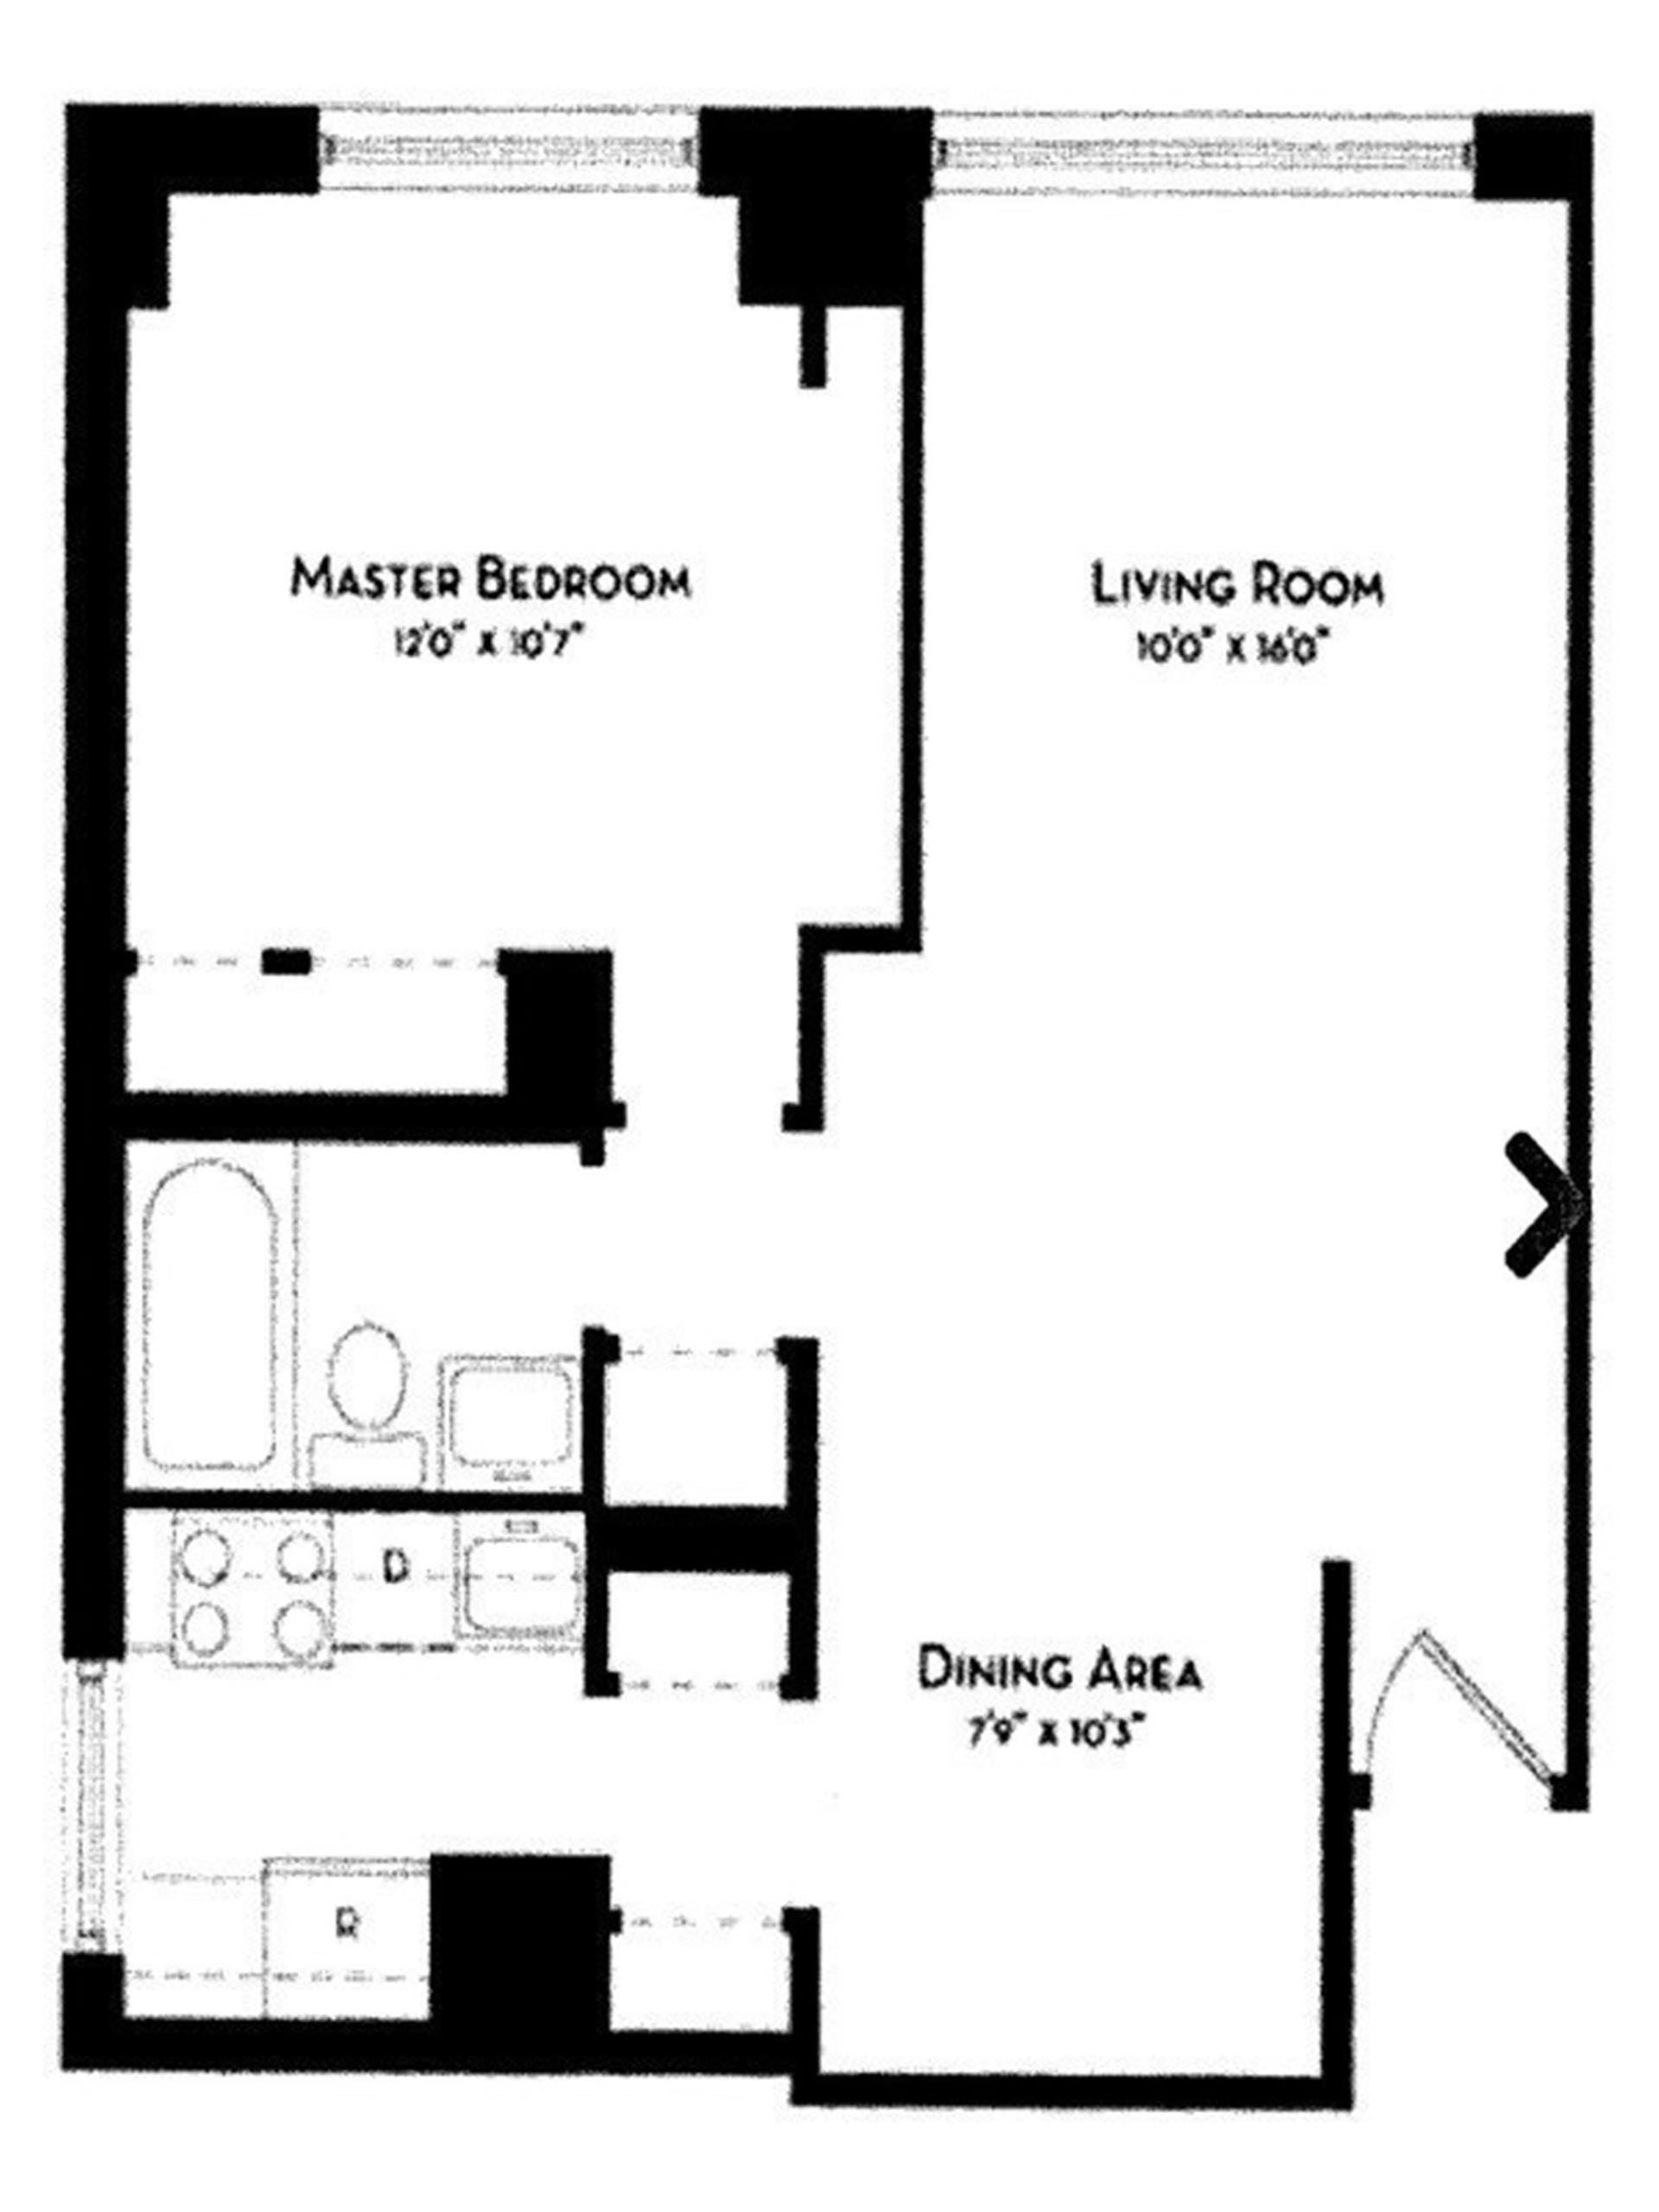 Floor plan of L'Ecole Condominium, 212 East 47th St, 16A - Turtle Bay, New York